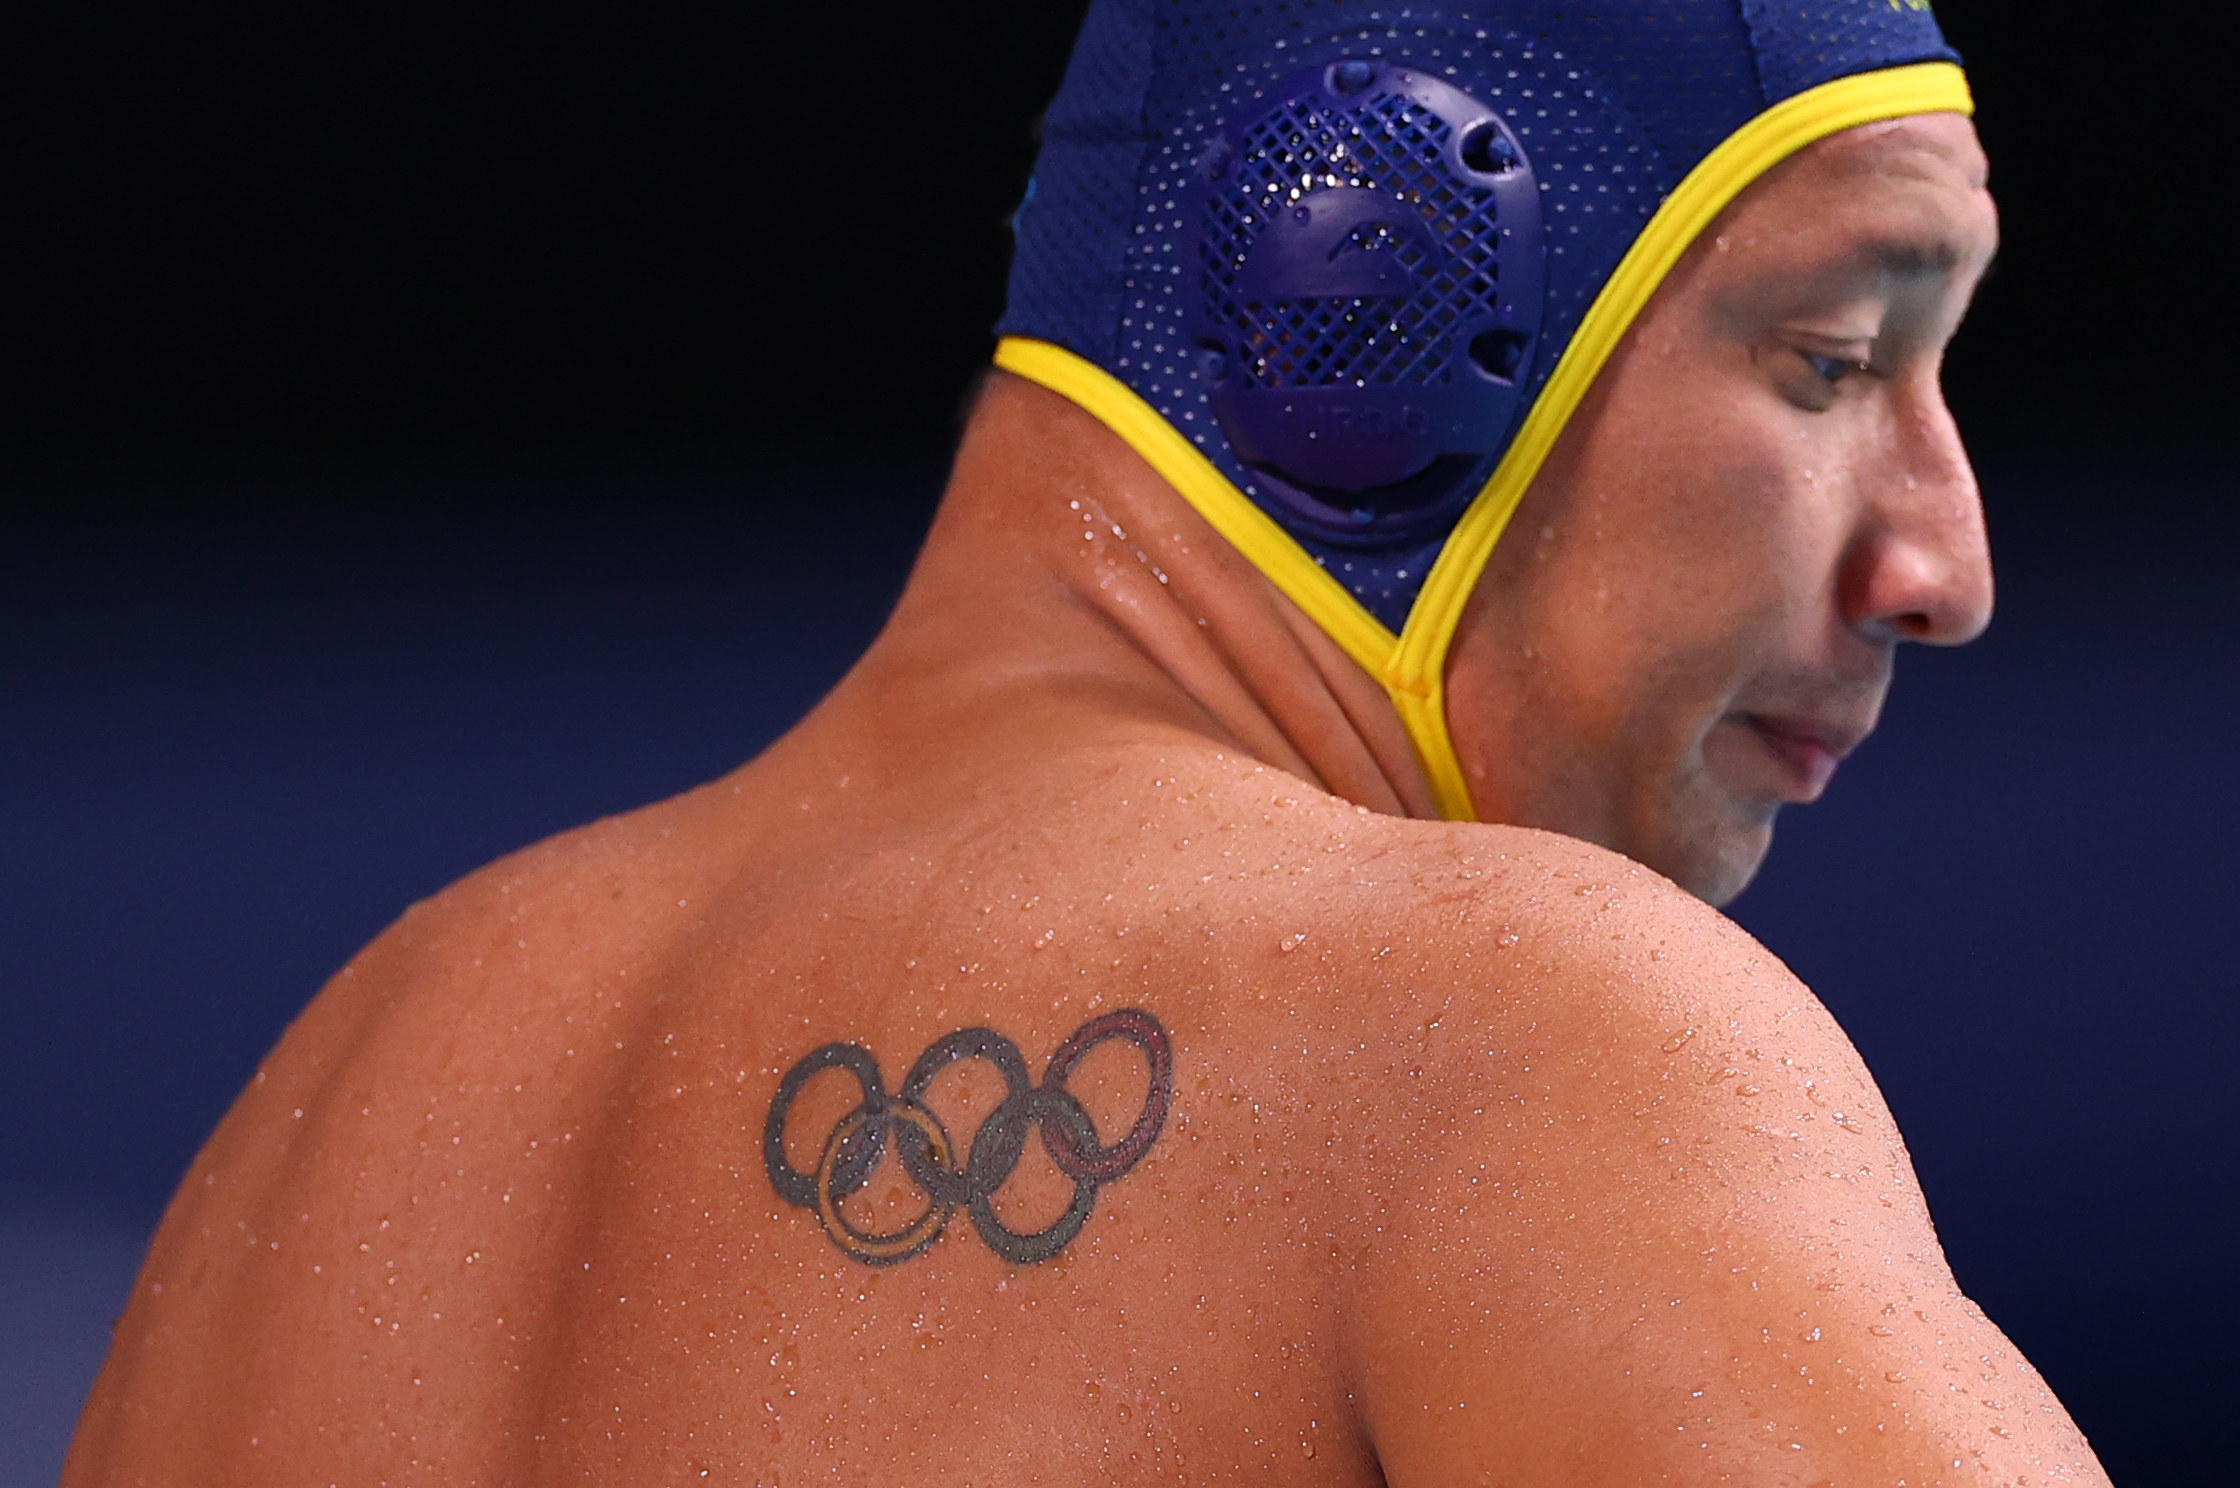 Close-up of wet back of Olympic male athlete with swim cap on head.